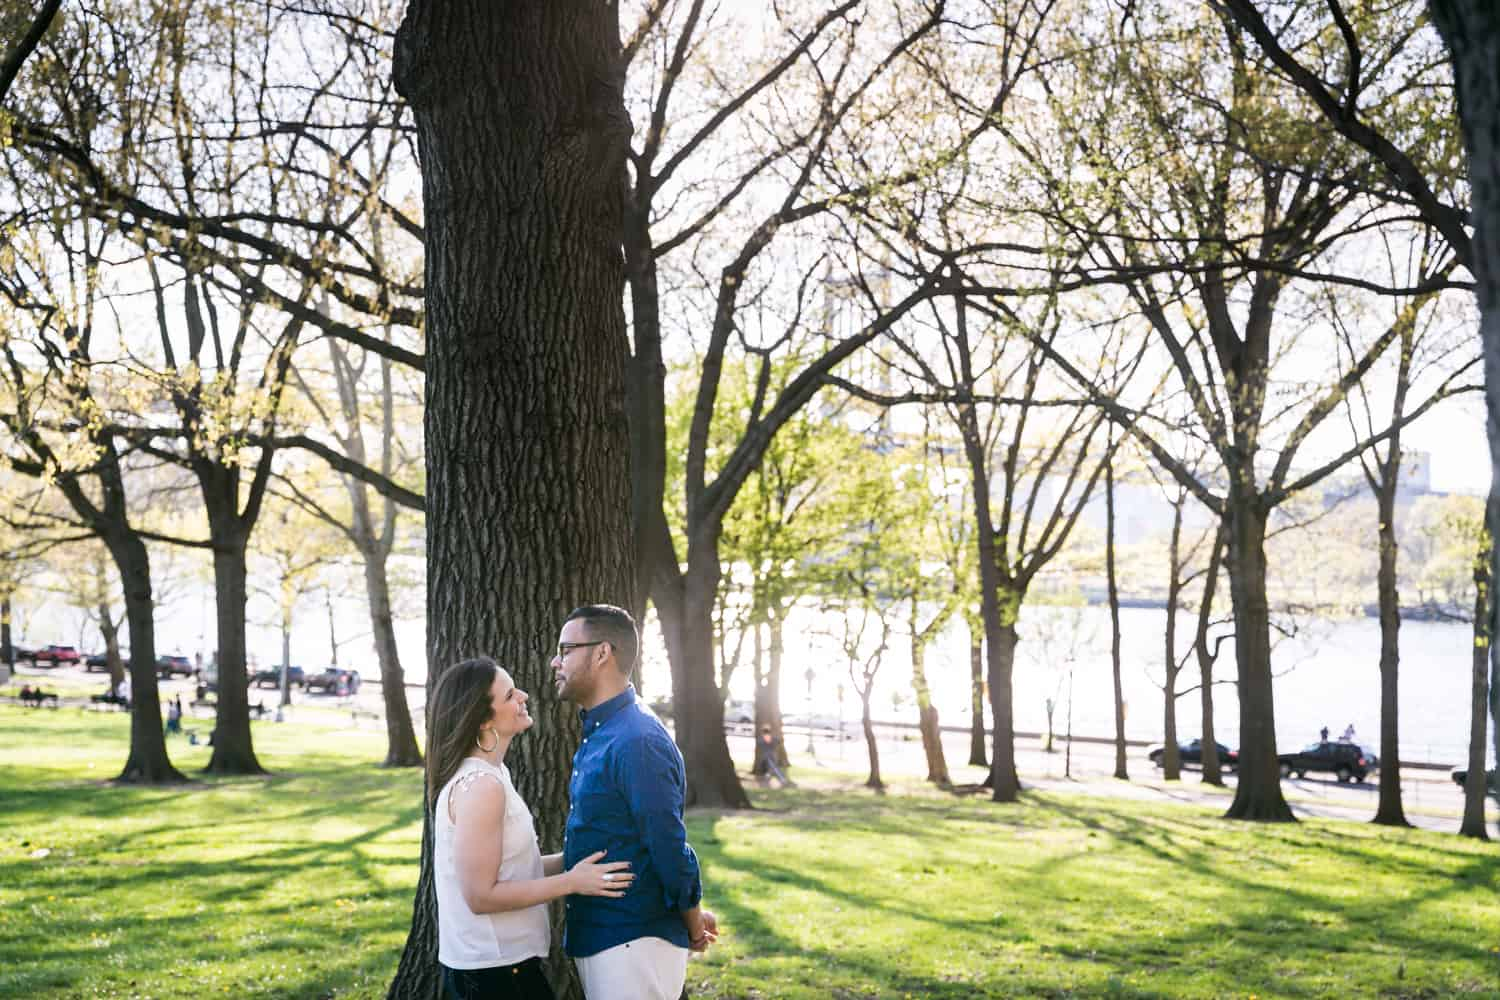 Couple hugging in front of tree during an Astoria Park engagement shoot